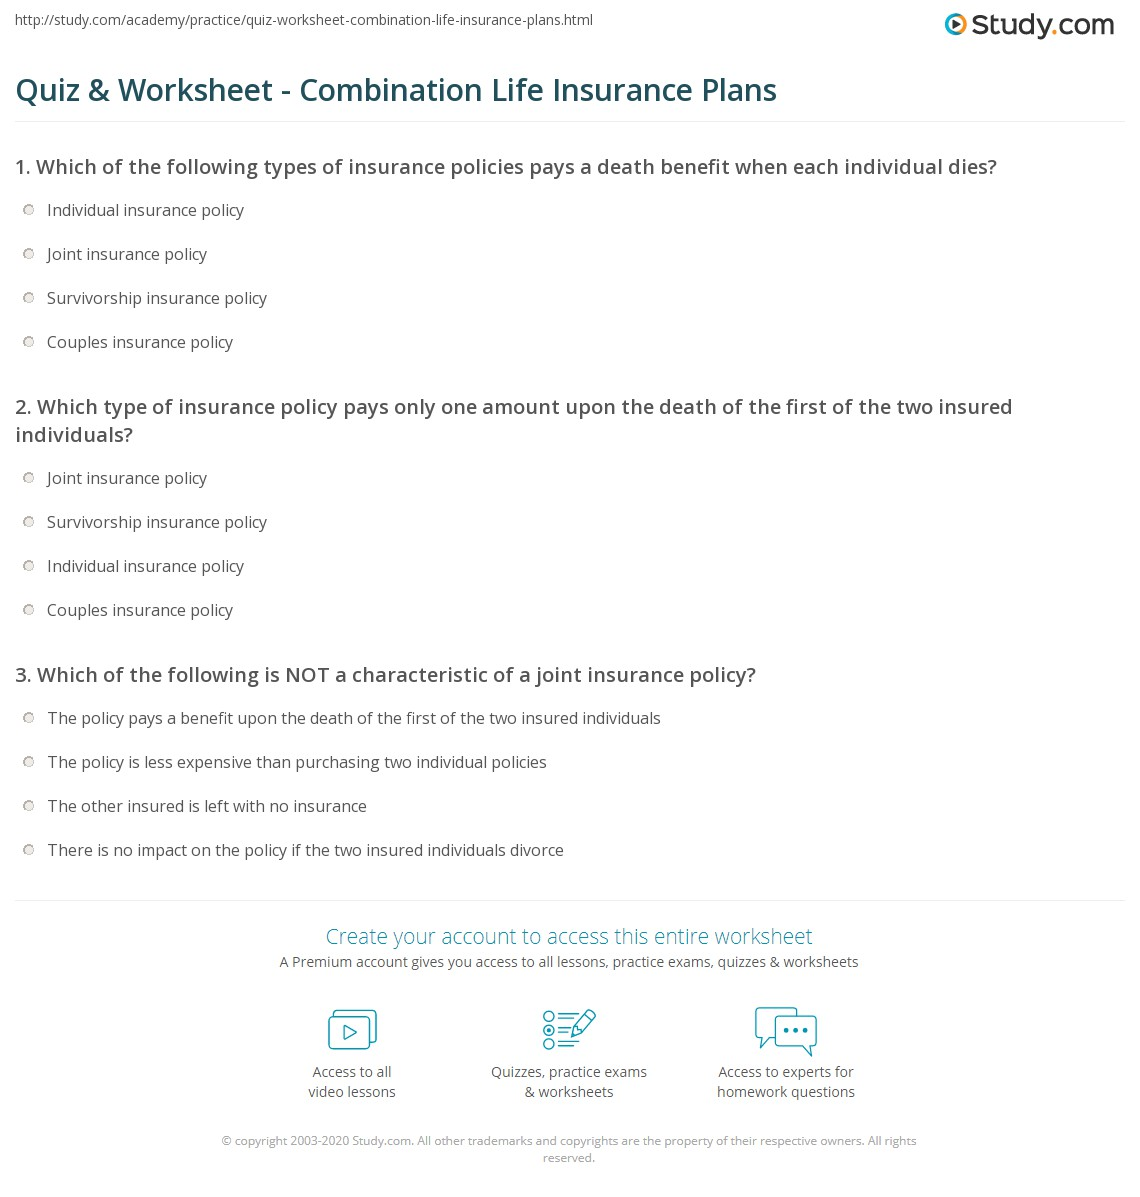 House Insurance Policy When Someone Dies - Home Sweet Home ...